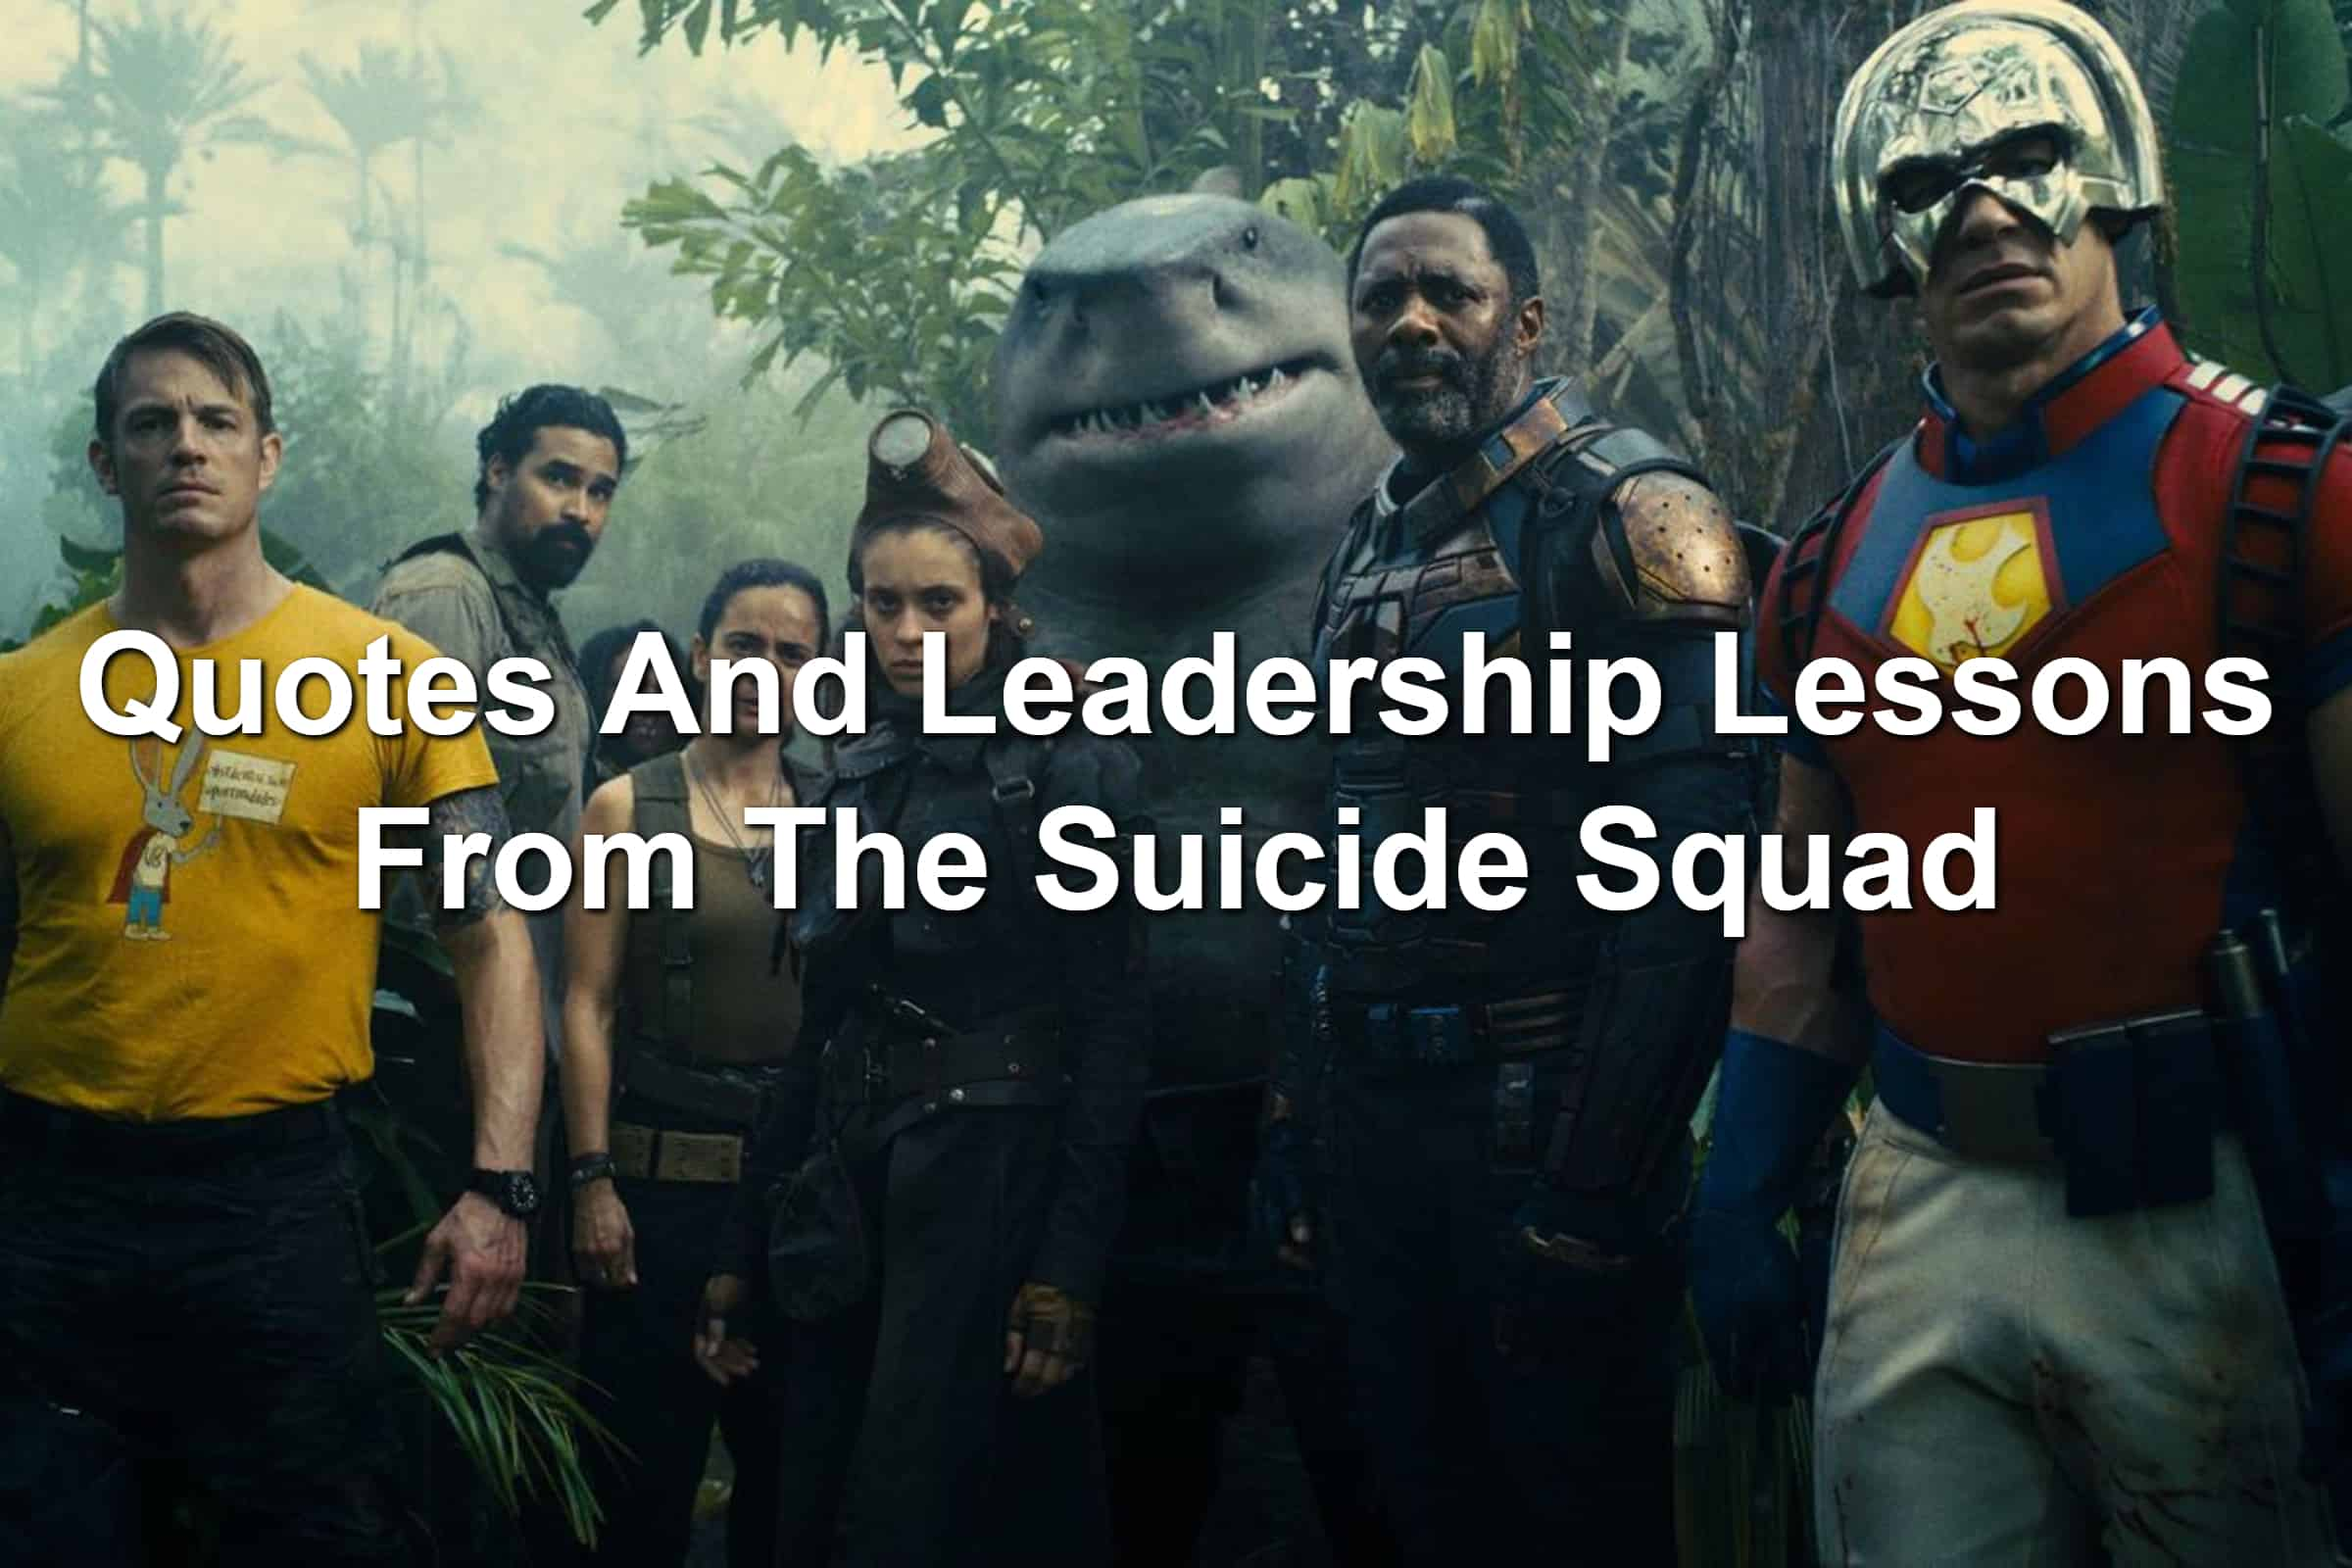 Cast of The Suicide Squad